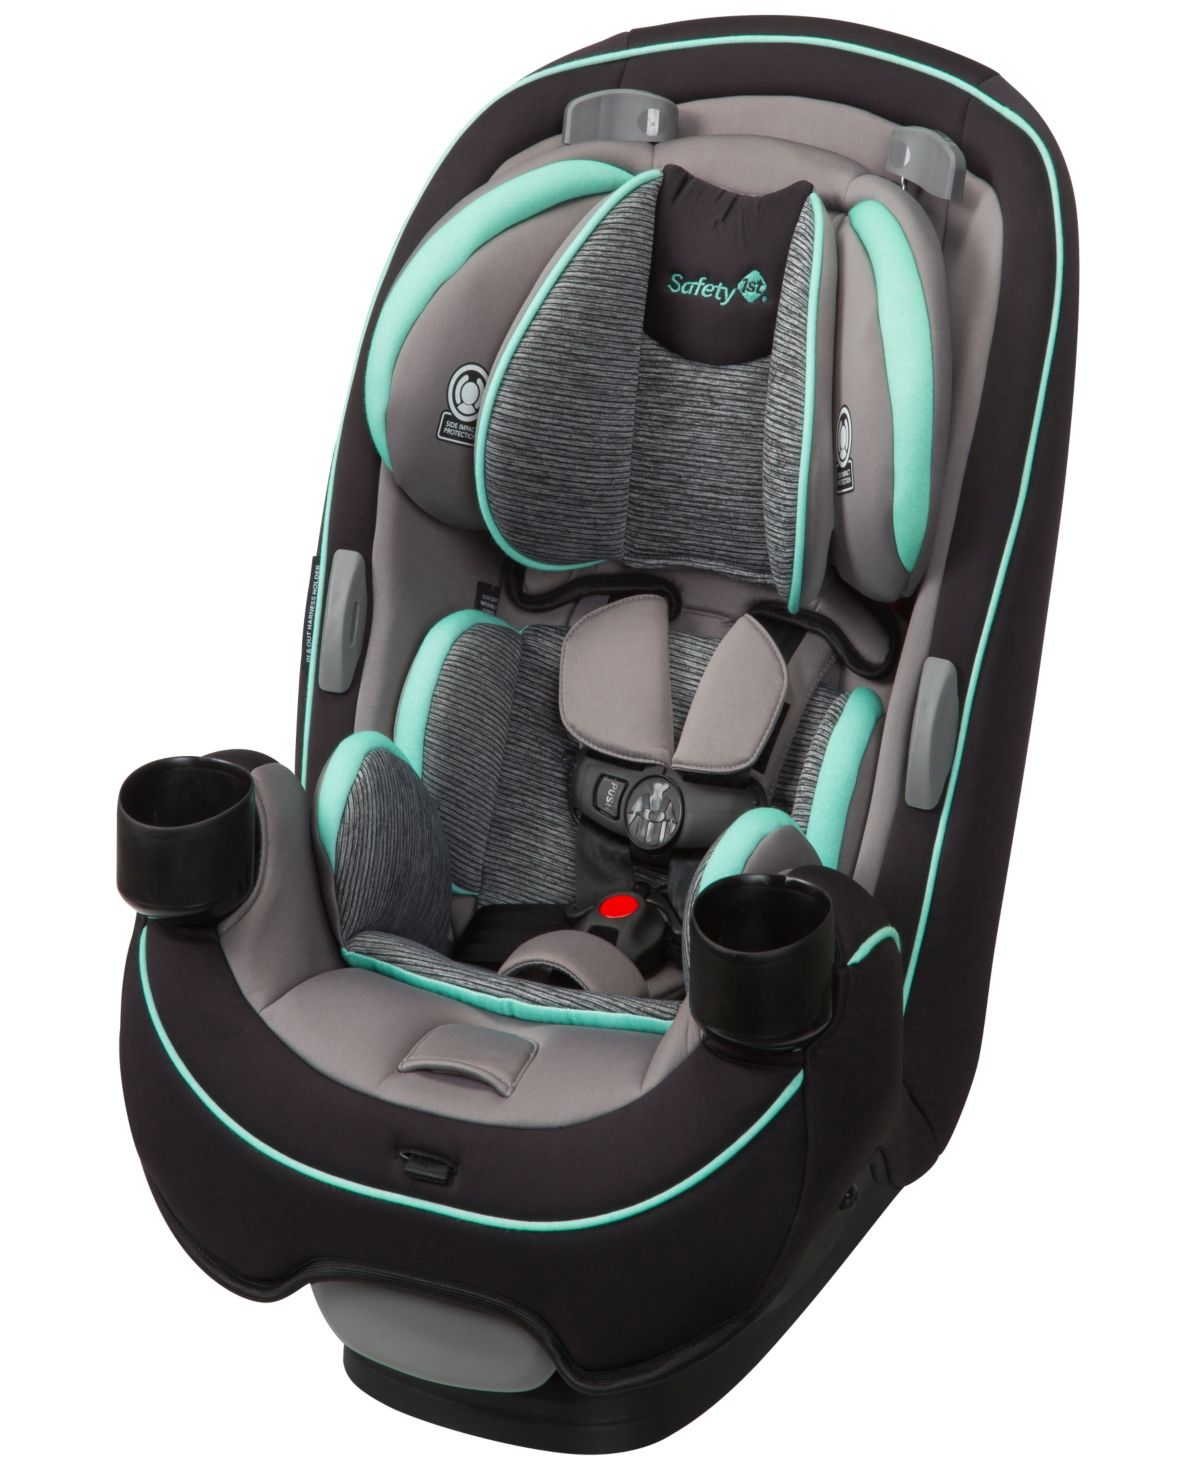 Cosco Safety 1st® Grow and Go™ 3in1 Convertible Car Seat